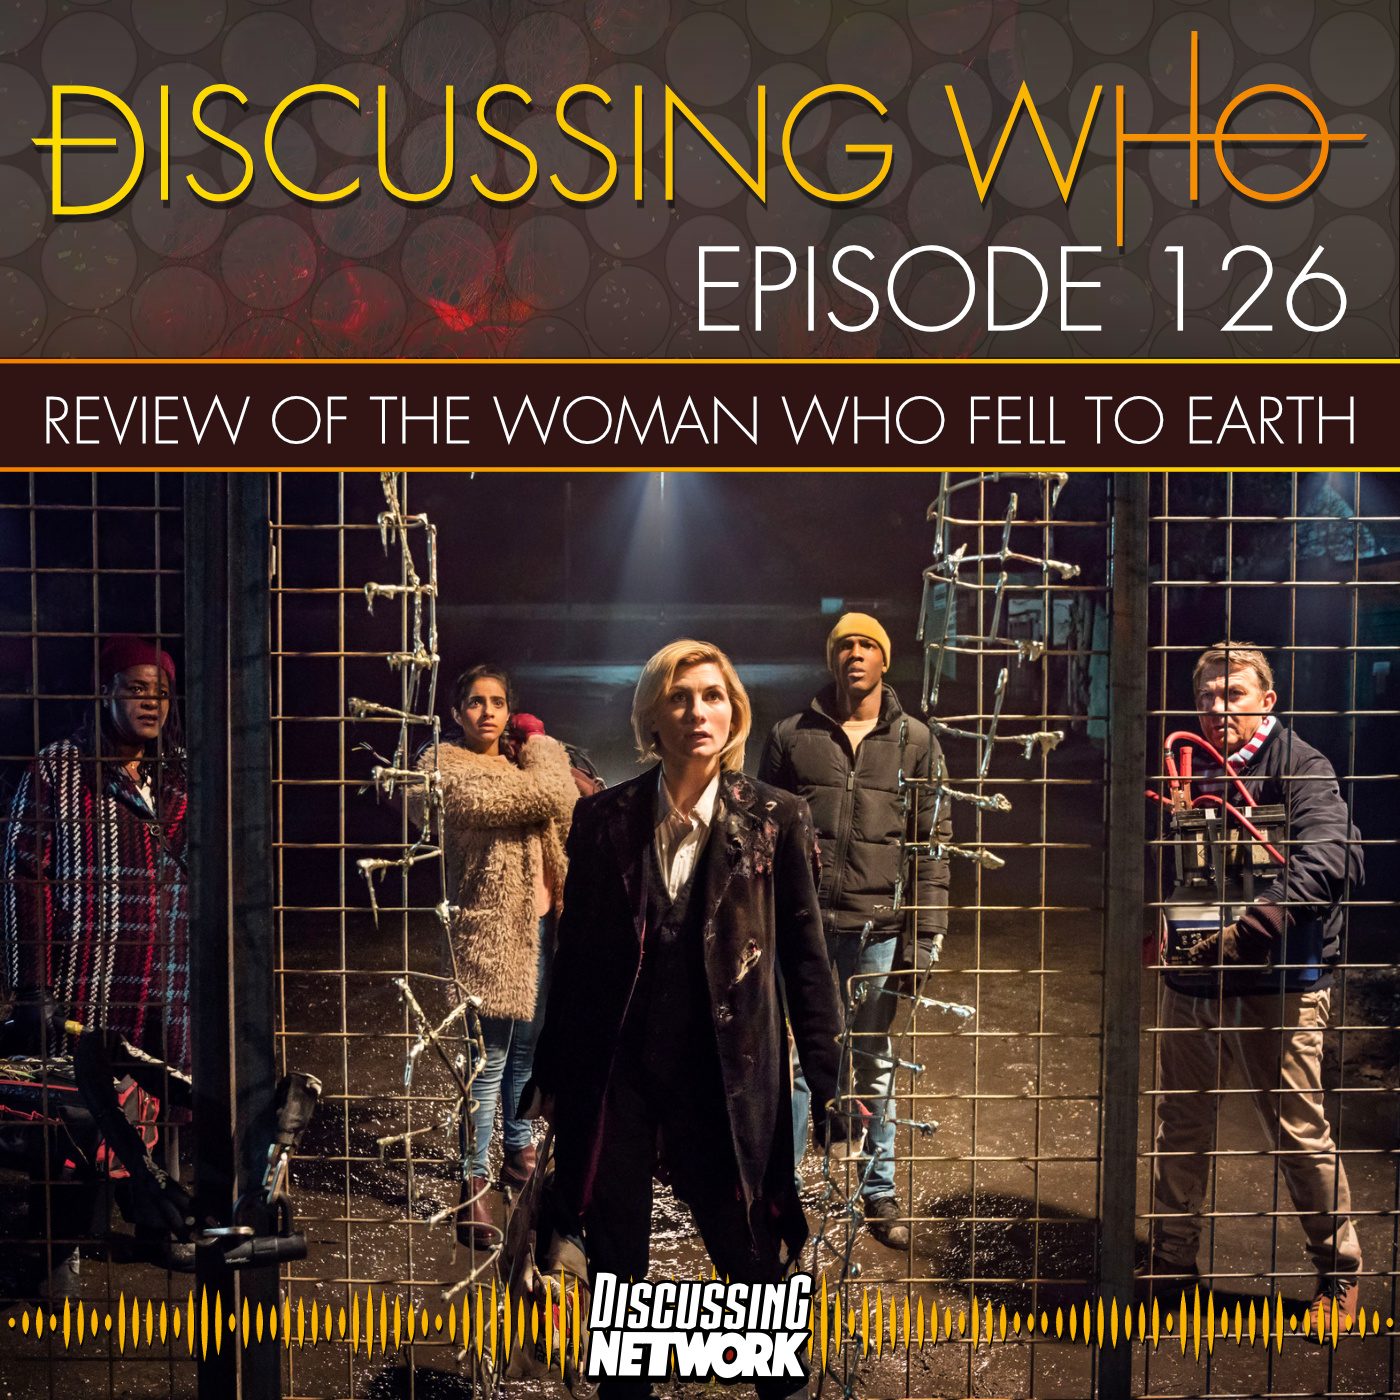 The Woman Who Fell to Earth, Doctor Who Series 11 Episode 1